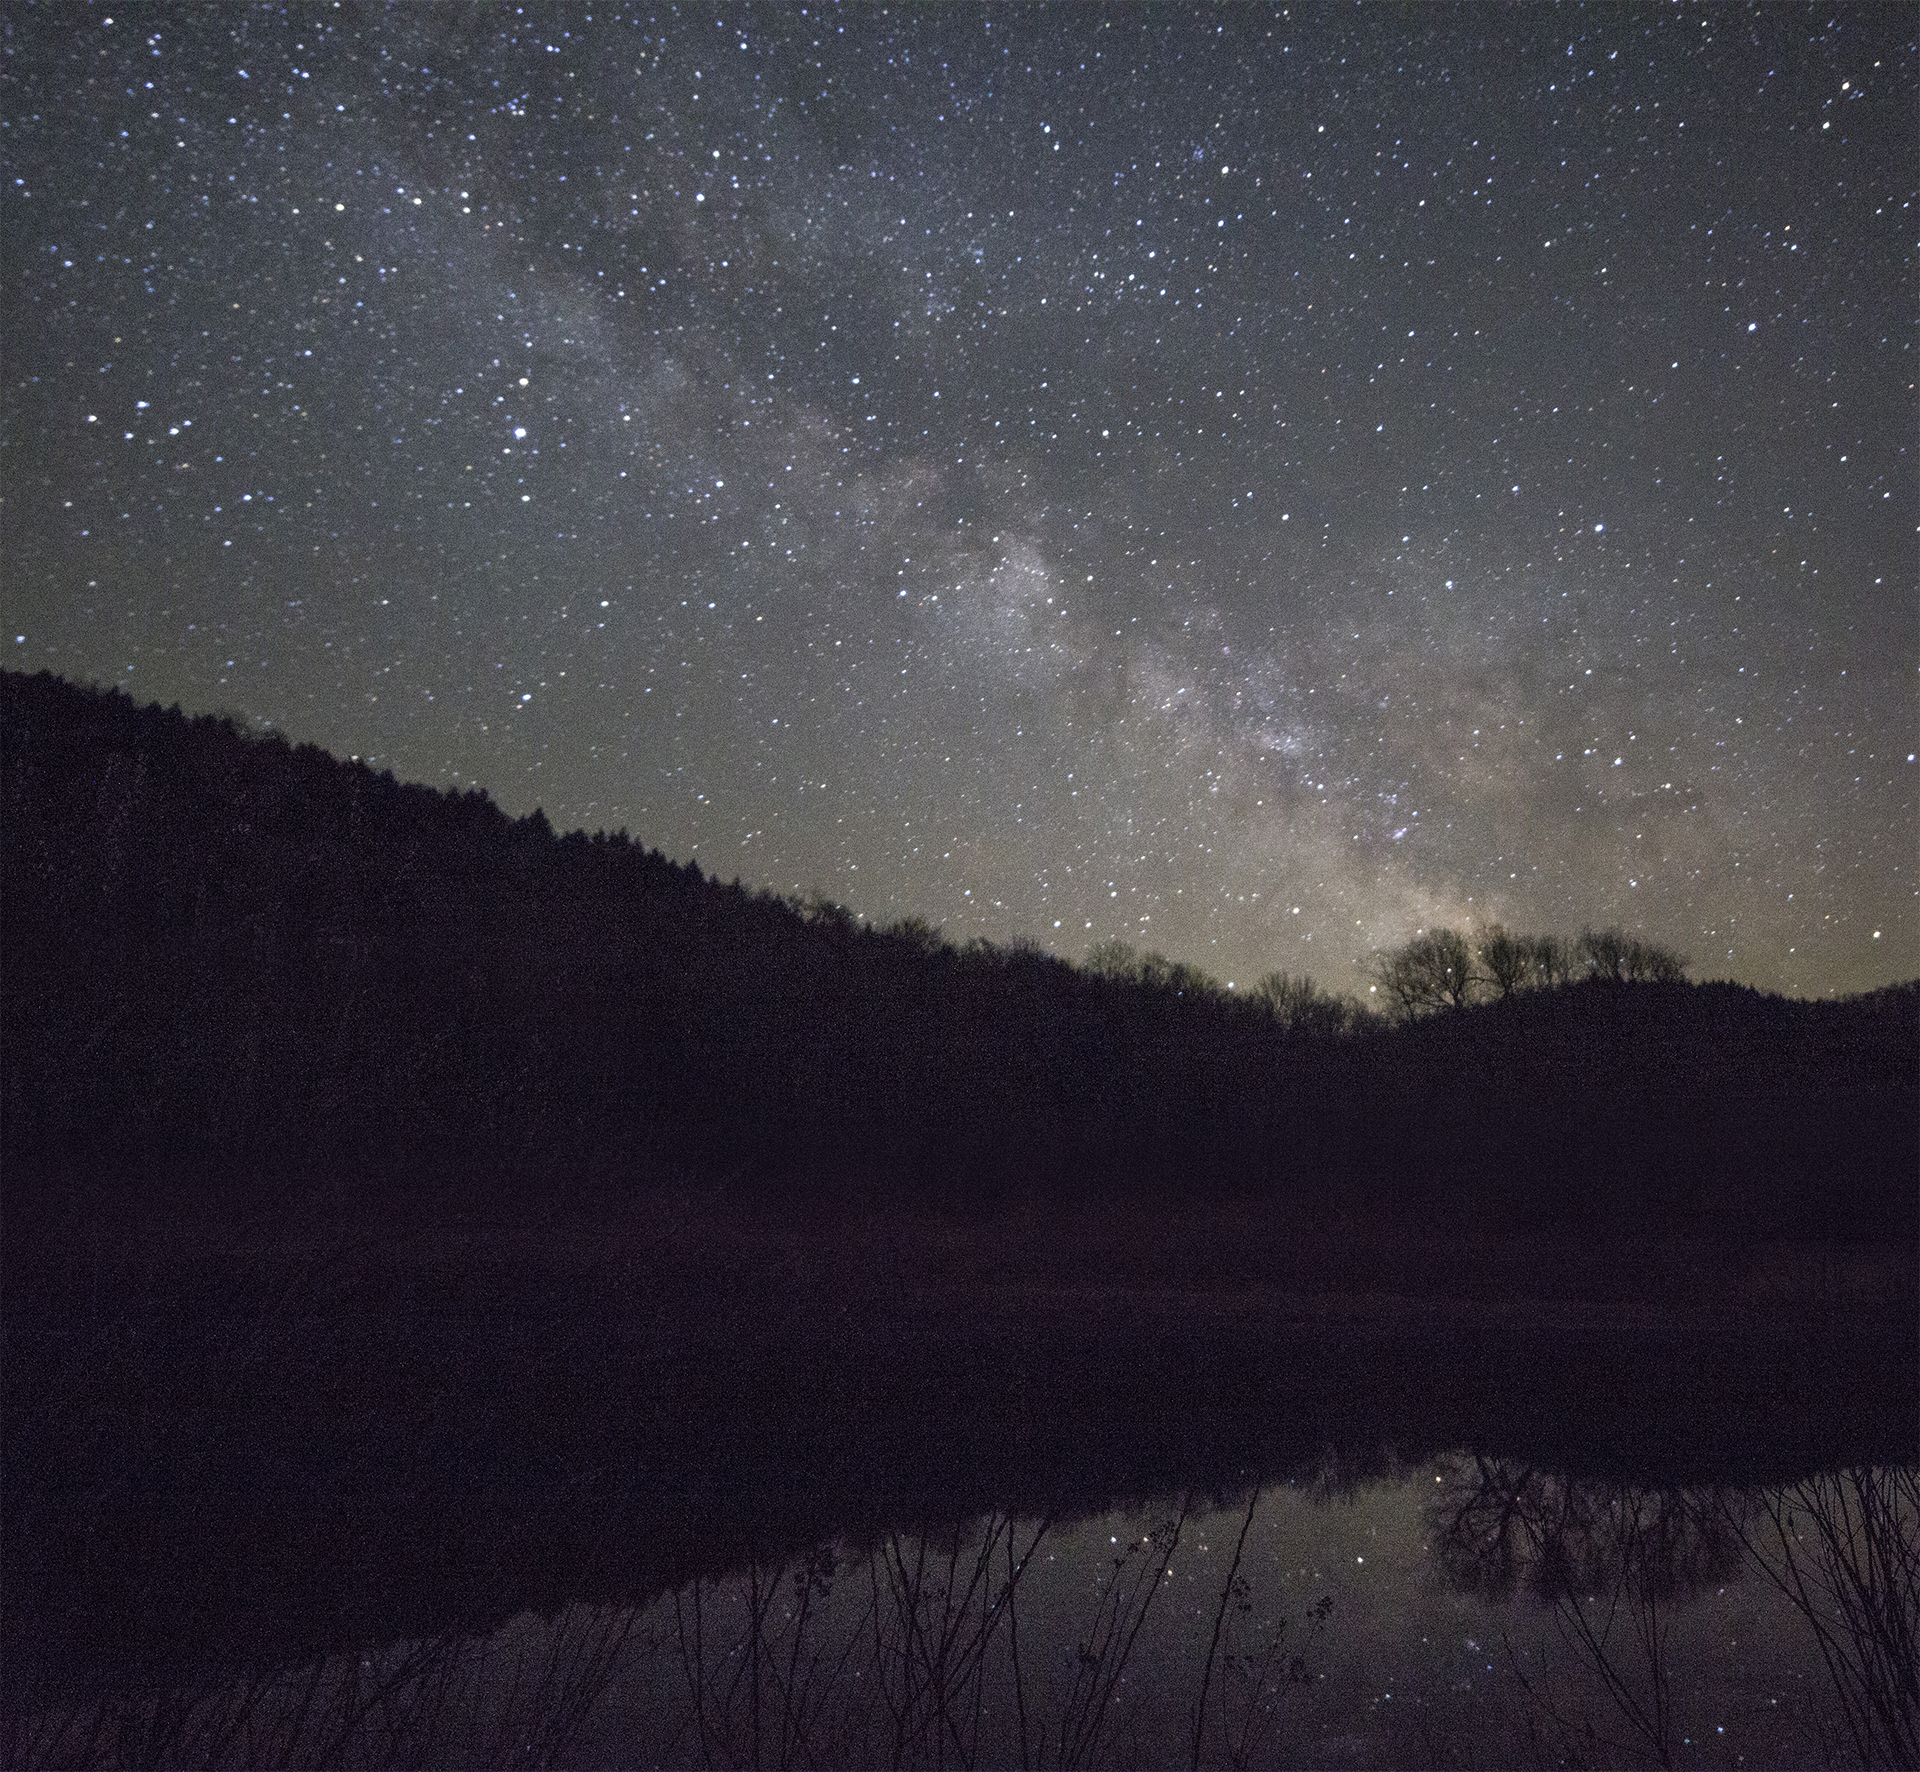 Waterbury Resevoir at night with the Milky Way